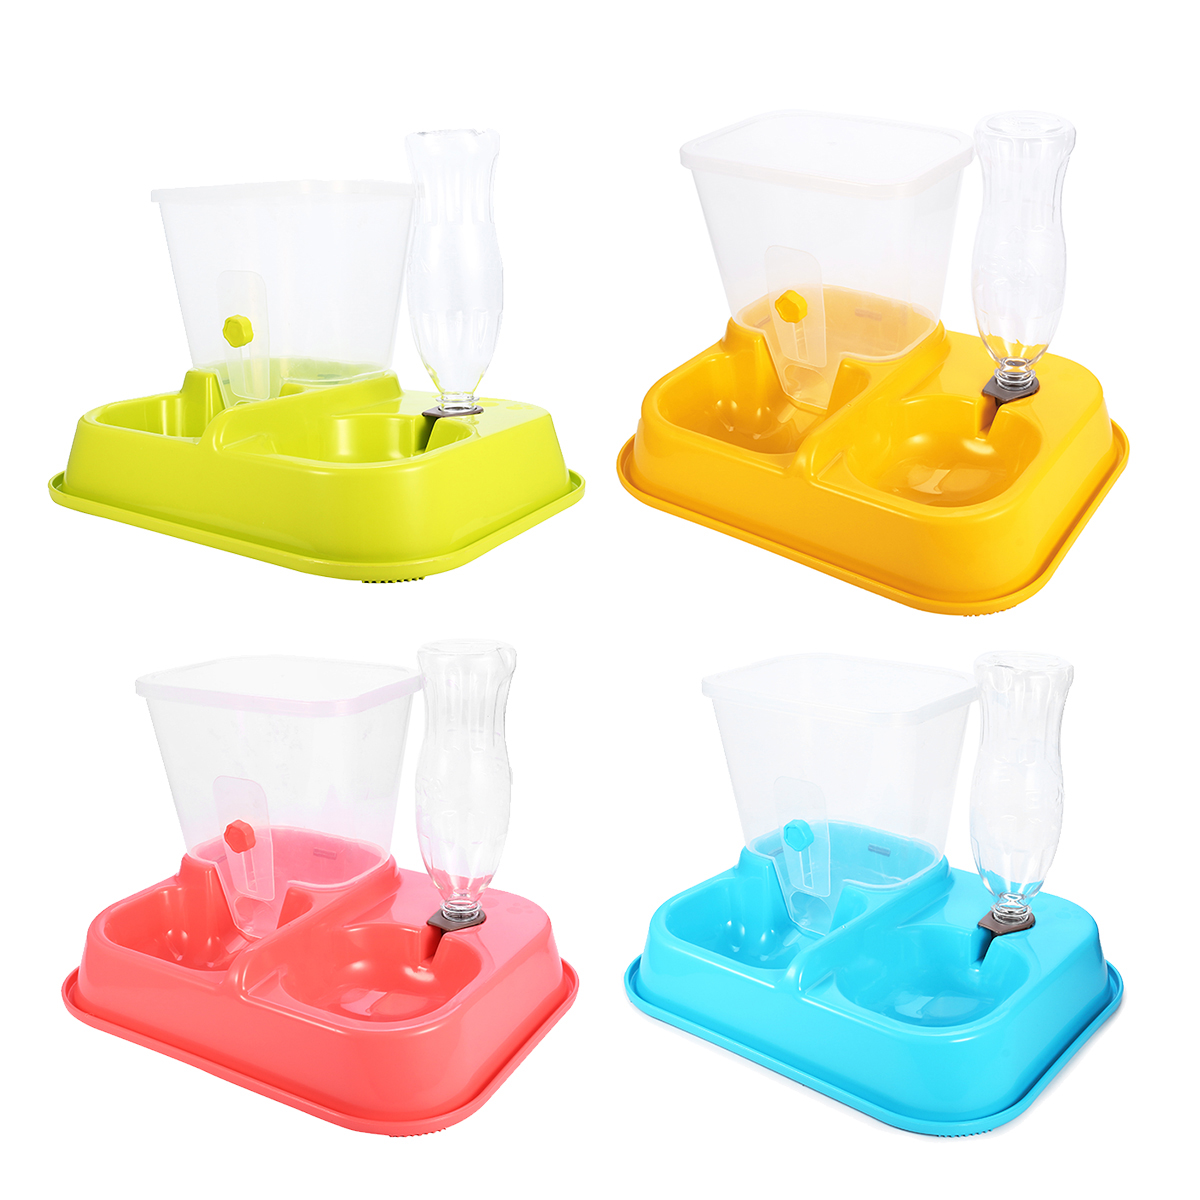 2 in1 Automatic Pet Feeder,Pet Water Feeder Fountain,Dog Cat Water Food Dispenser Bowl,Pet Waterer Feeder Replenish Set